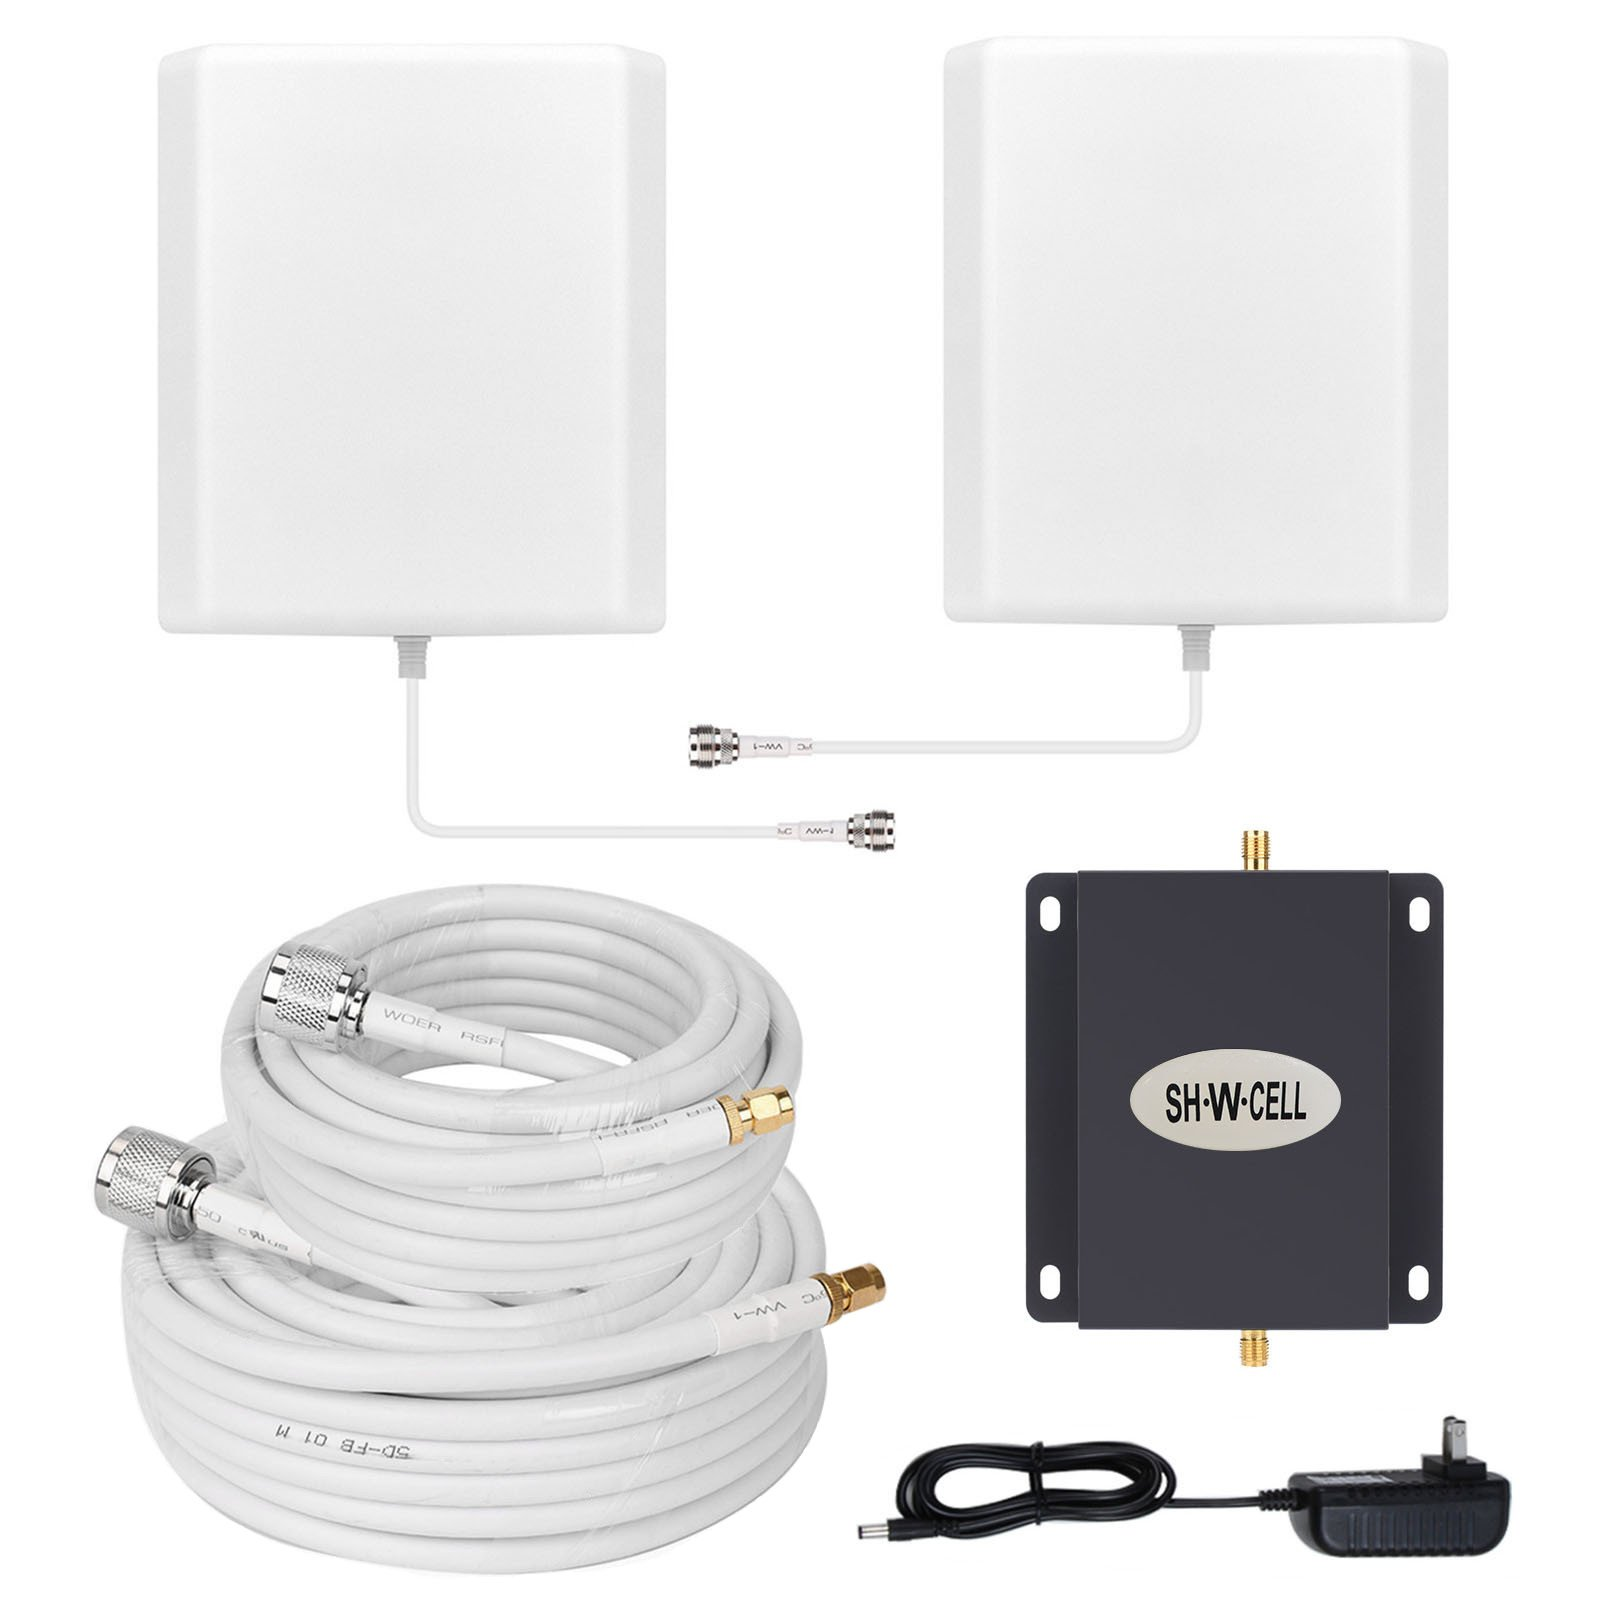 T-Mobile AWS MetroPCS 3G 4G LTE Band 4 1700/2100MHZ Cell Phone Signal Booster Mobile Amplifier Repeater SHWCELL Strength Signal Including Indoor/Outdoor Panel Antennas for Home Office Basement